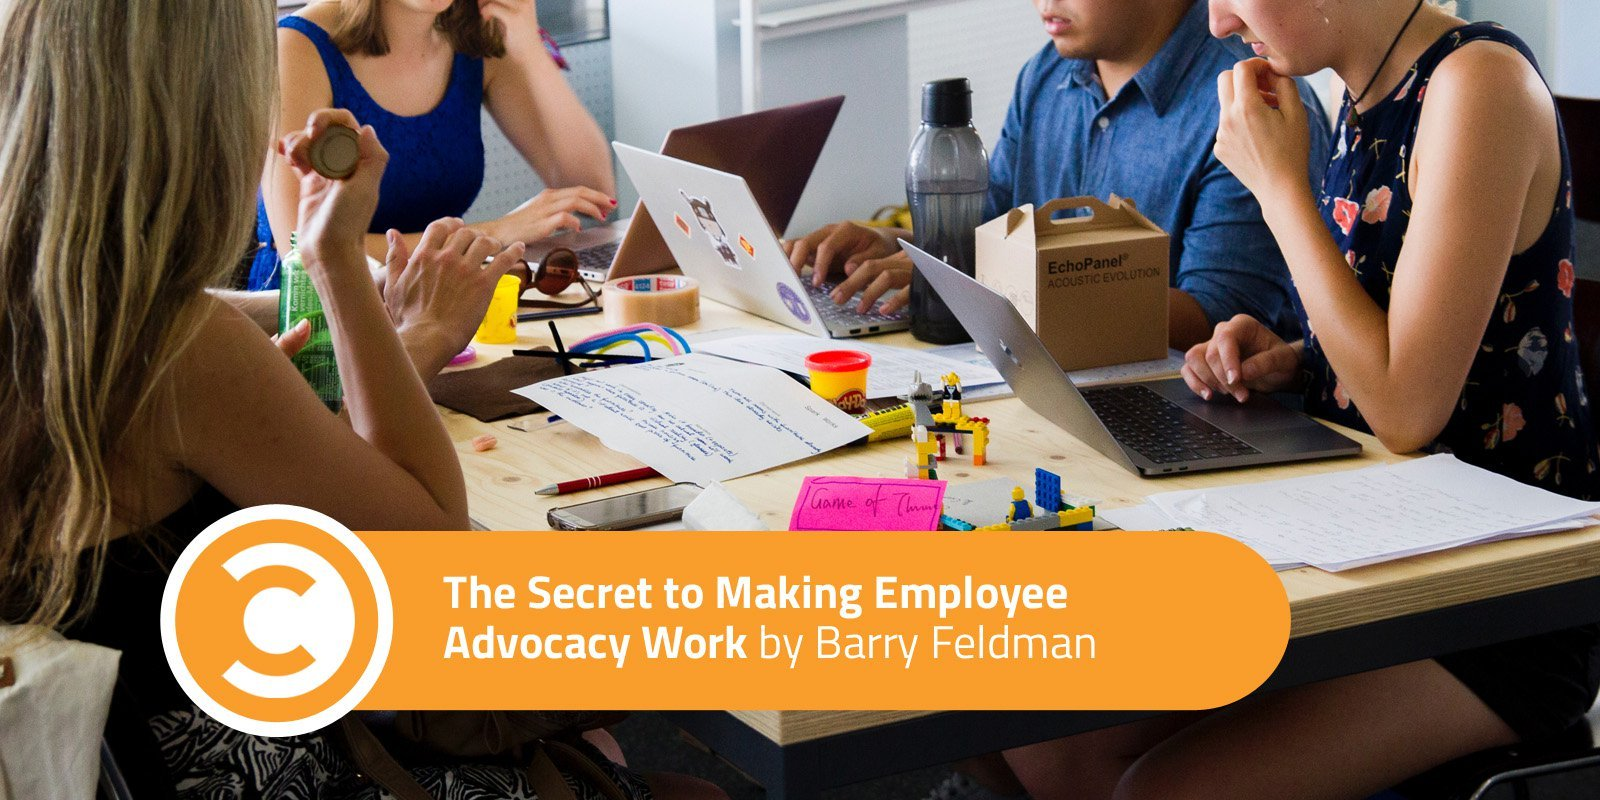 The Secret to Making Employee Advocacy Work